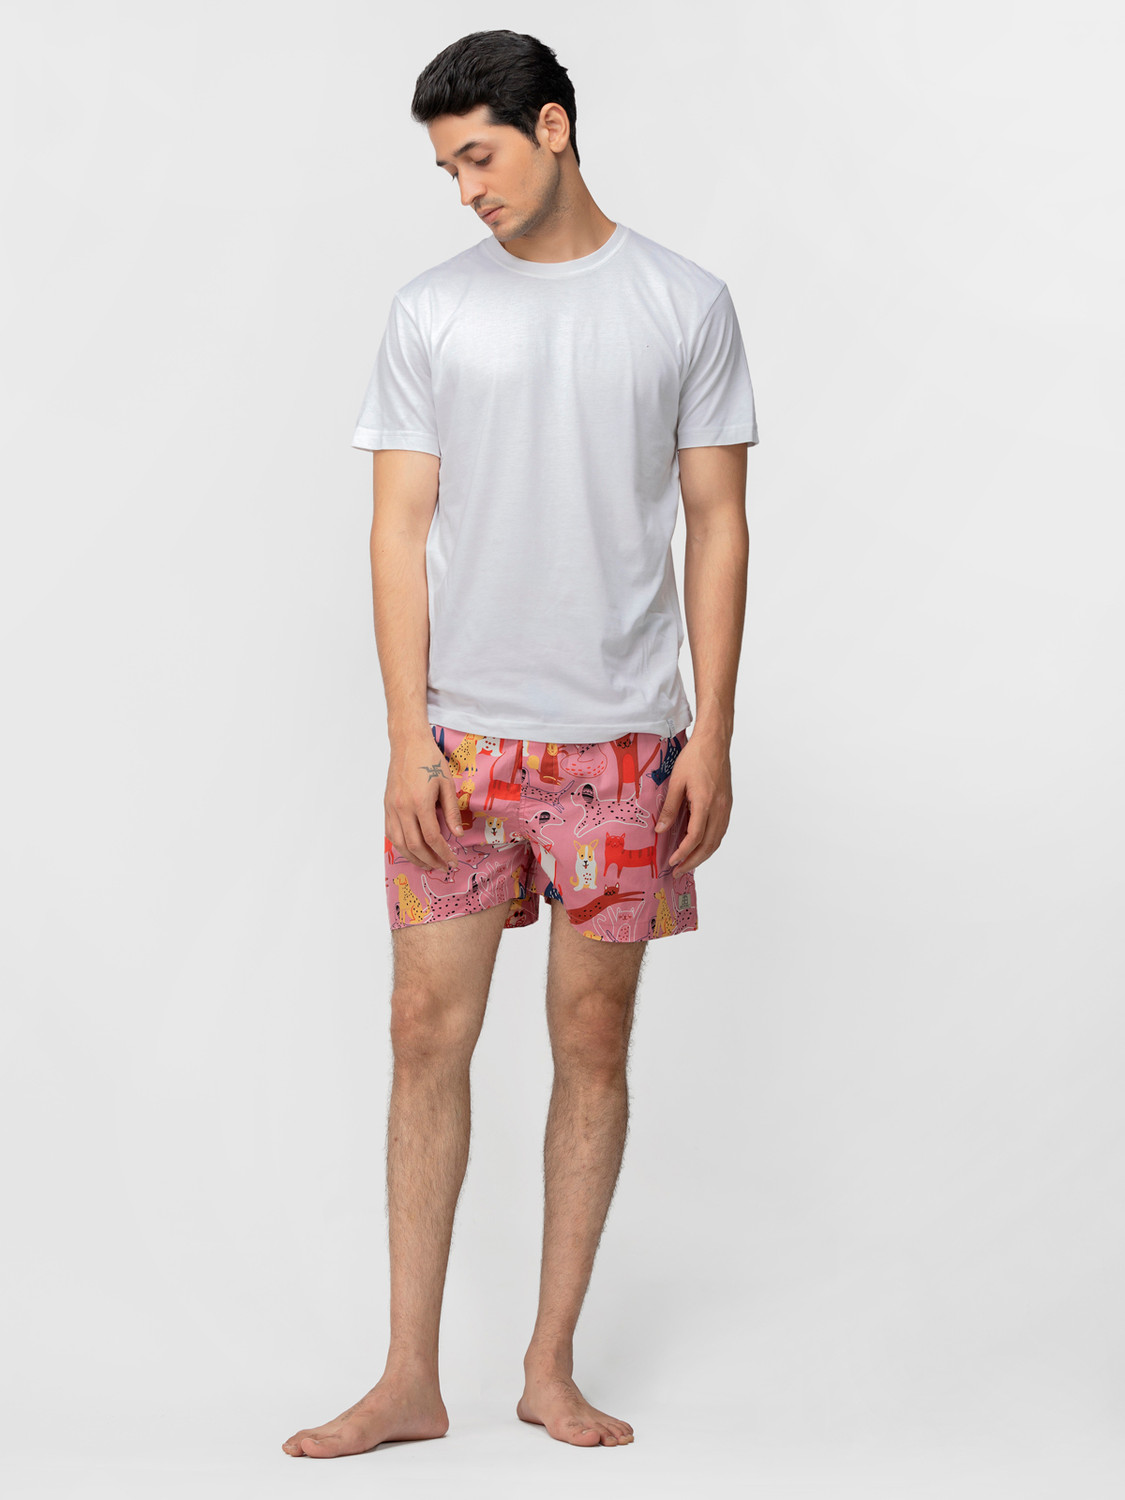 Love at FURst Sight Men's Rayon-Cotton Boxers